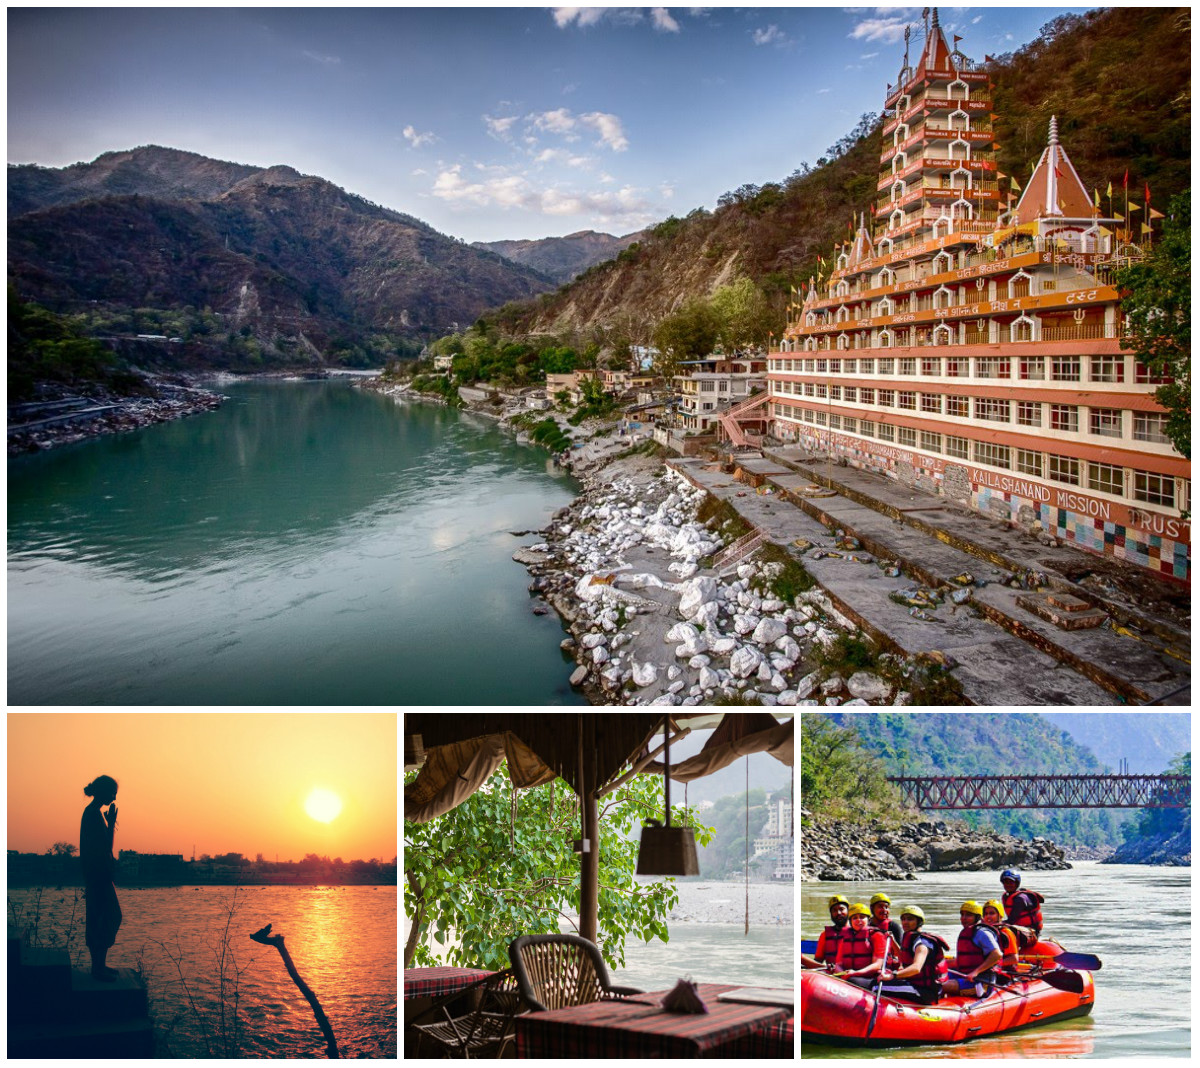 Rishikesh collage.jpg